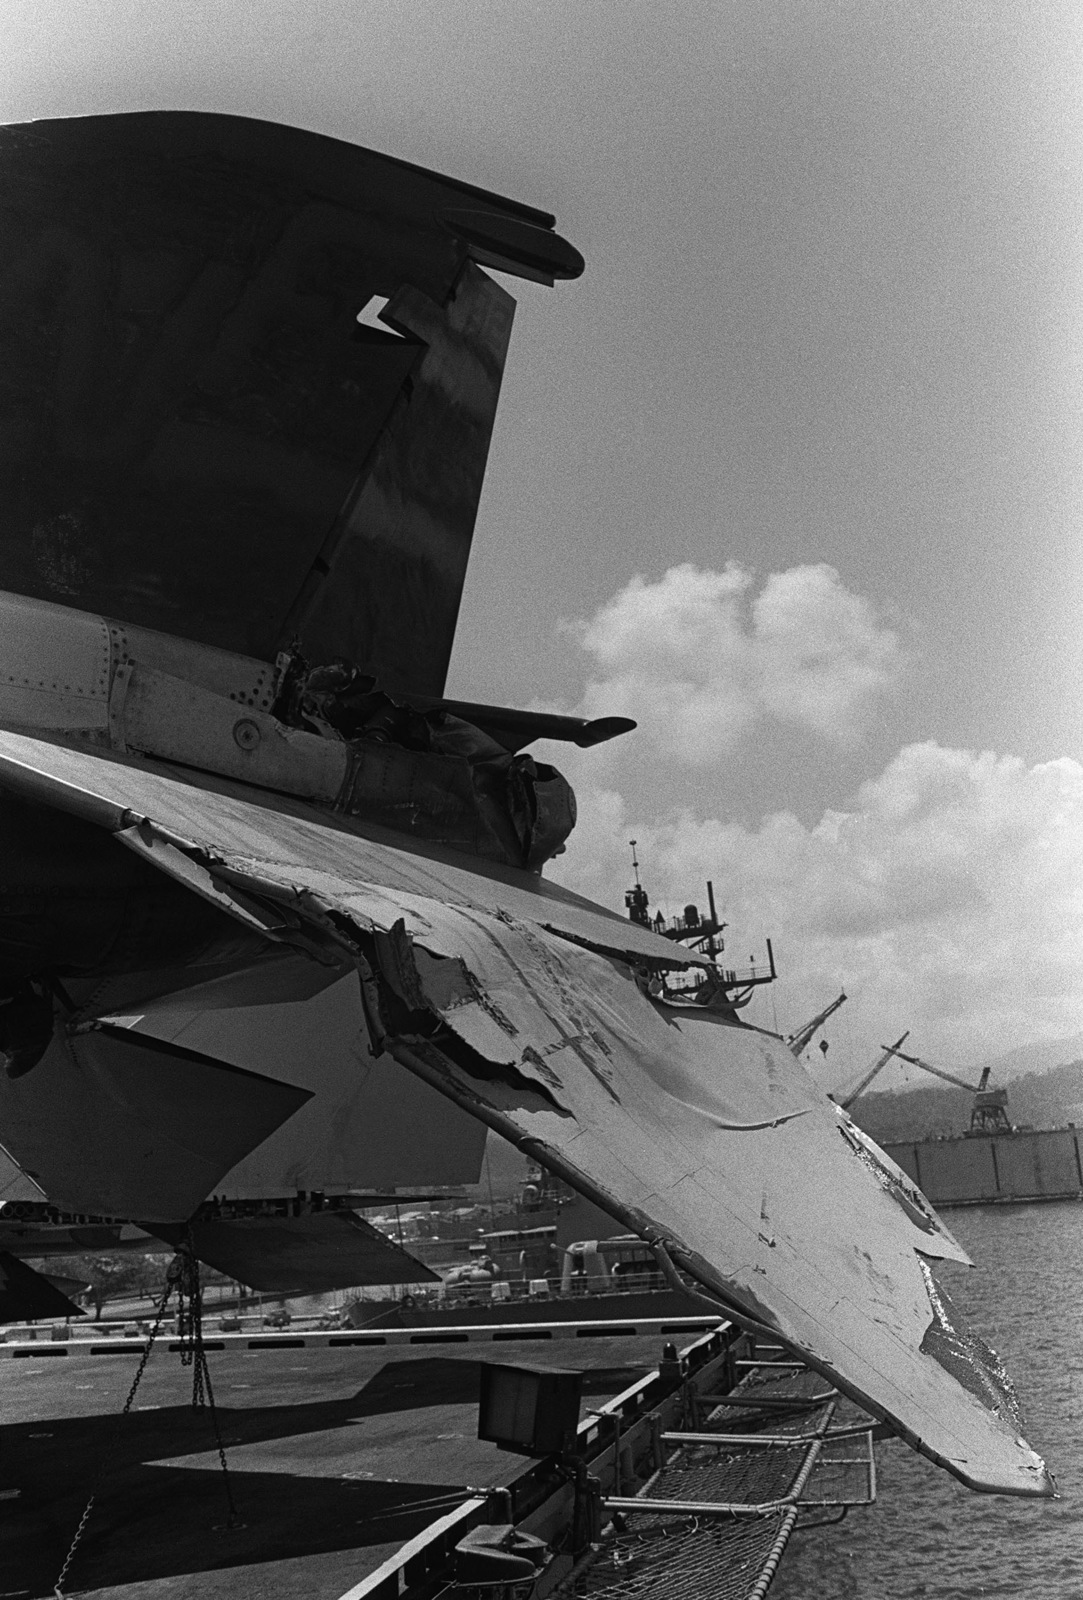 A view of damage caused to the tail section of an F-4 Phantom II aircraft when the aircraft carrier USS MIDWAY (CV 41) collided with the Panamanian freighter CACTUS